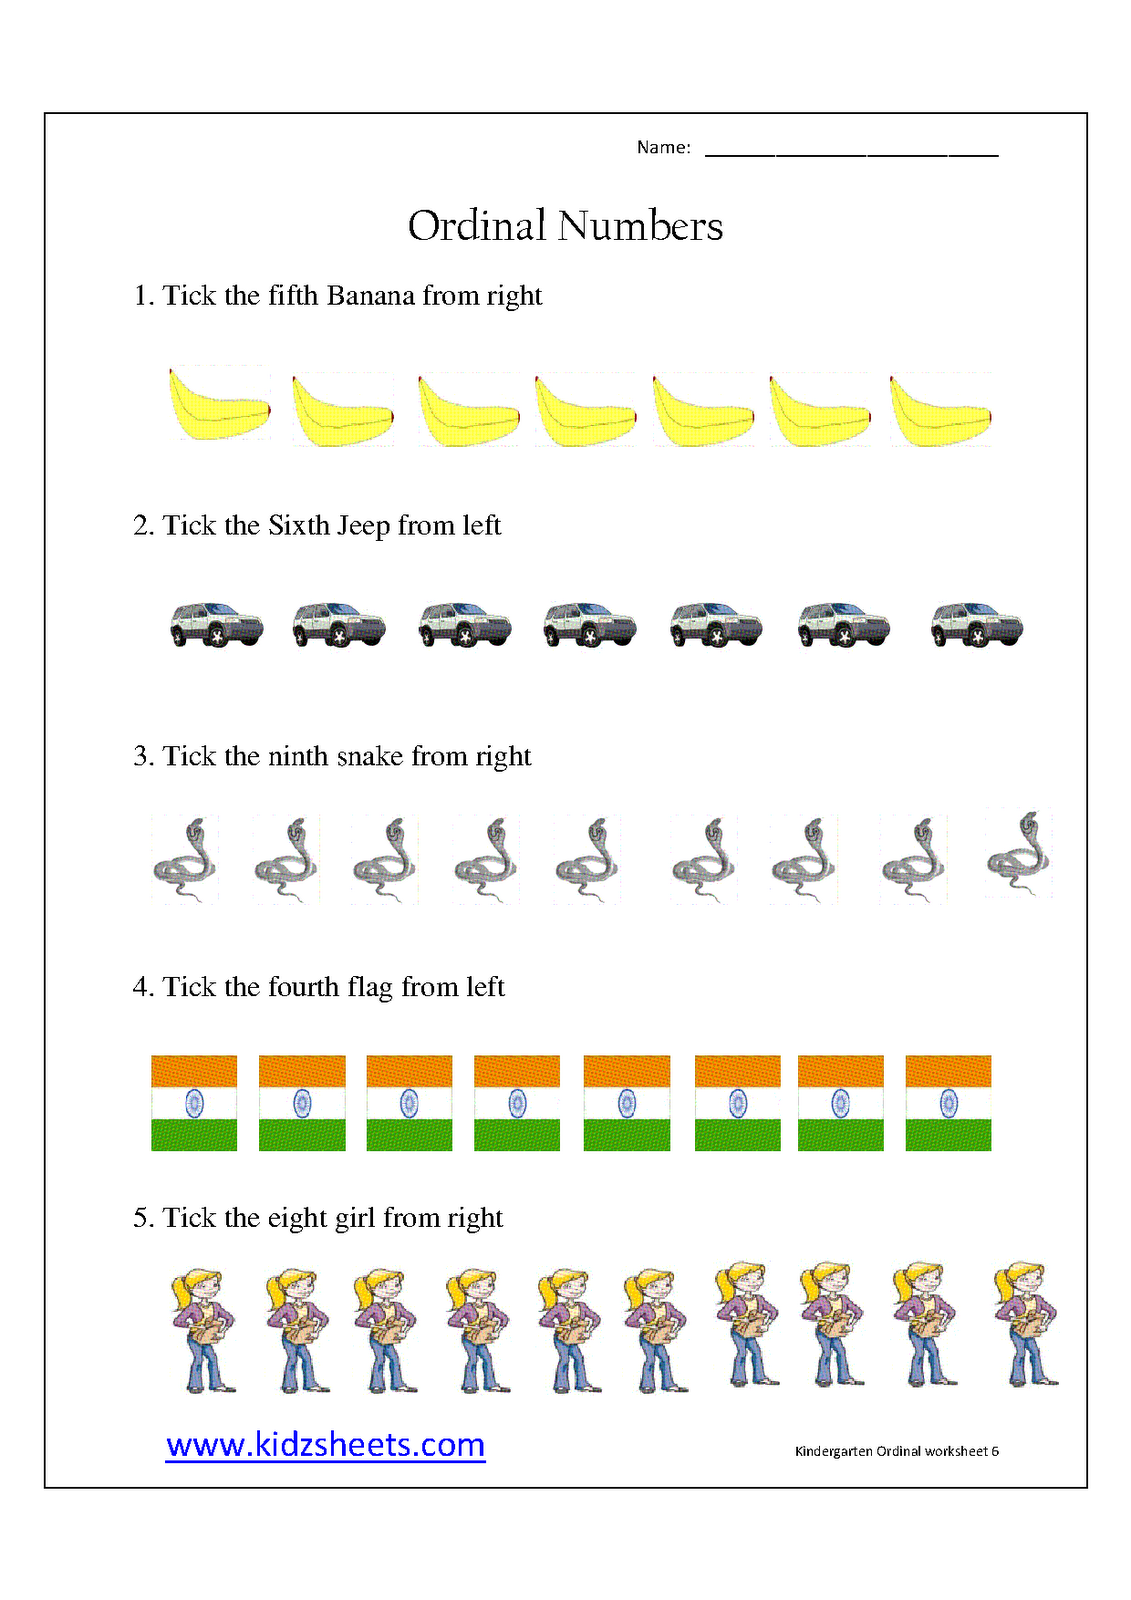 Kidz Worksheets Kindergarten Ordinal Numbers Worksheet6 – Ordinal Numbers Worksheet for Kindergarten